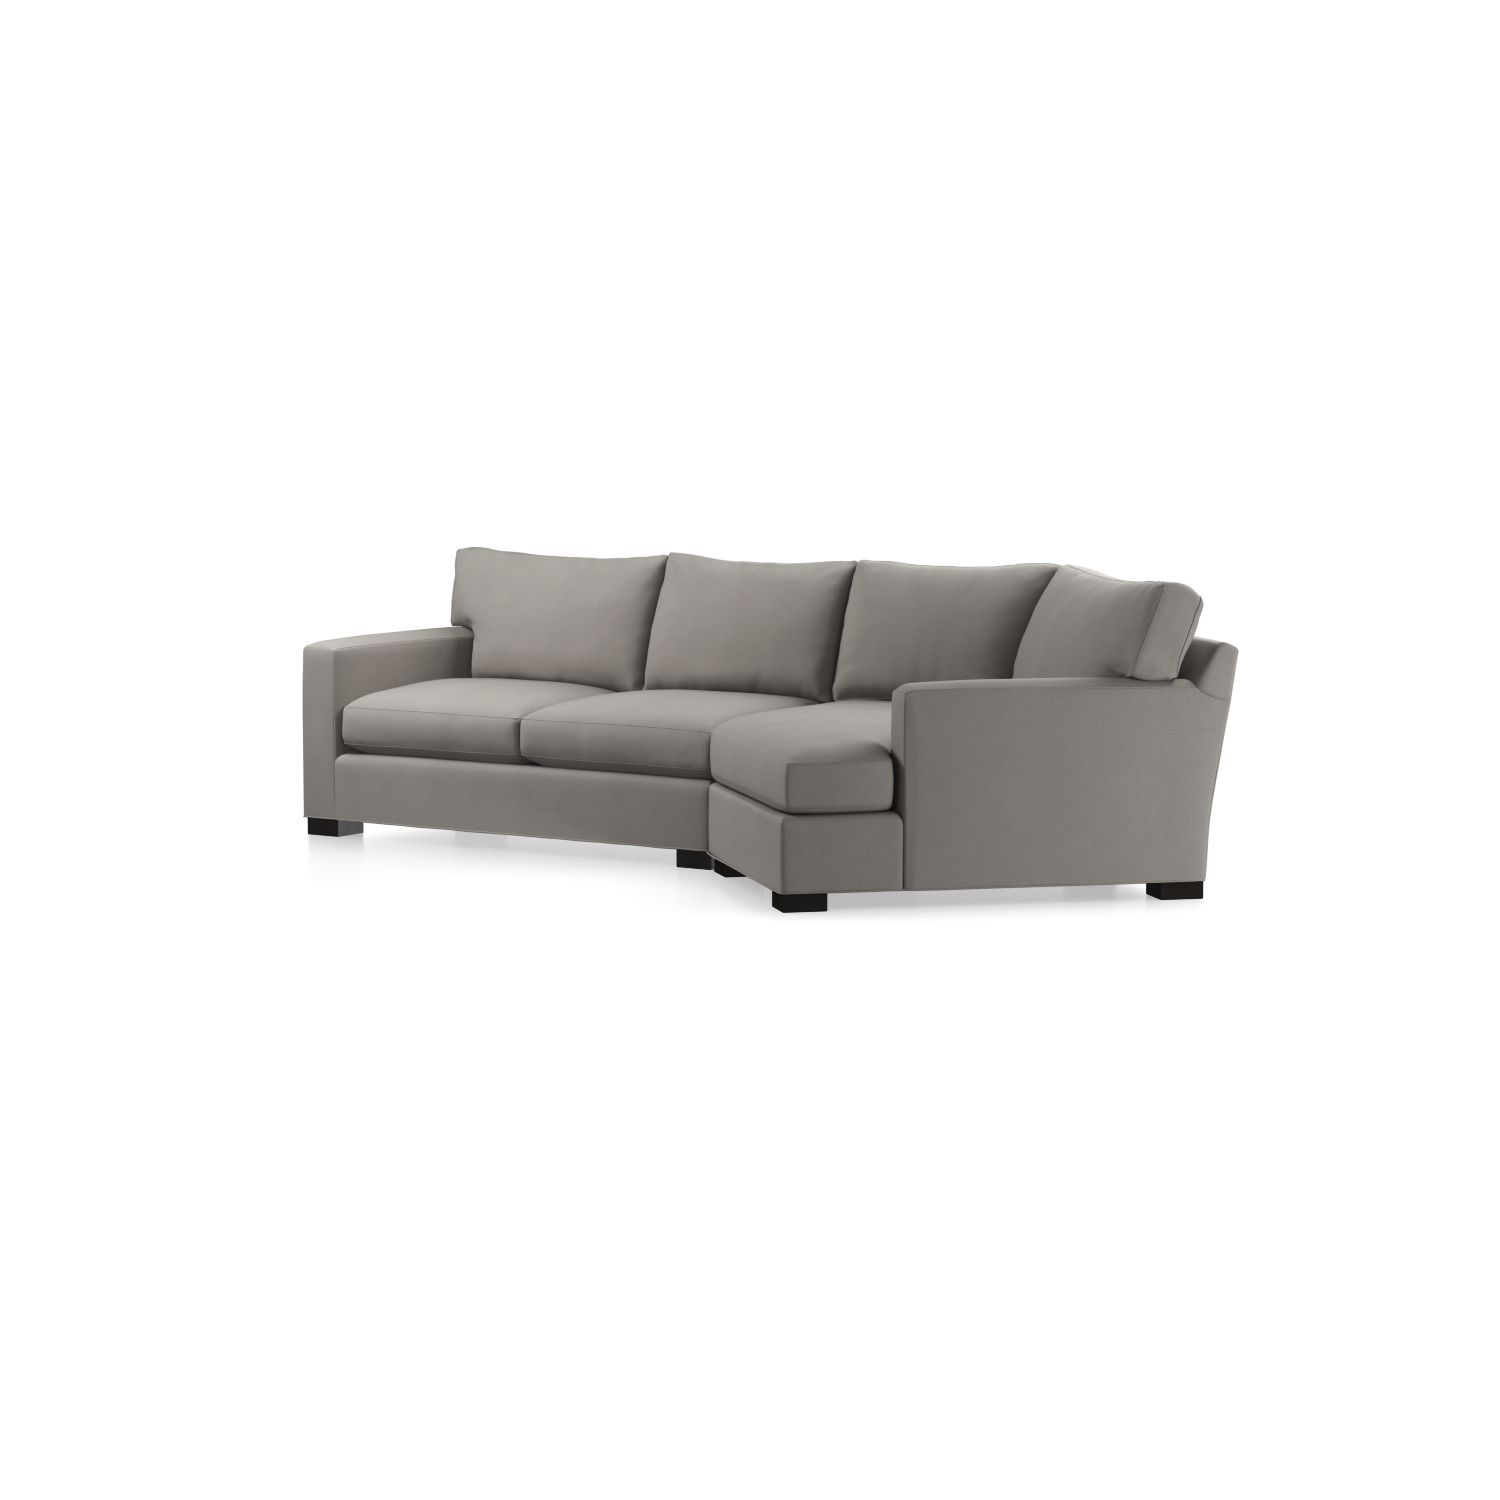 Axis Ii 2-Piece Right Arm Angled Chaise Sectional Sofa In Axis inside Angled Chaise Sofas (Image 5 of 10)